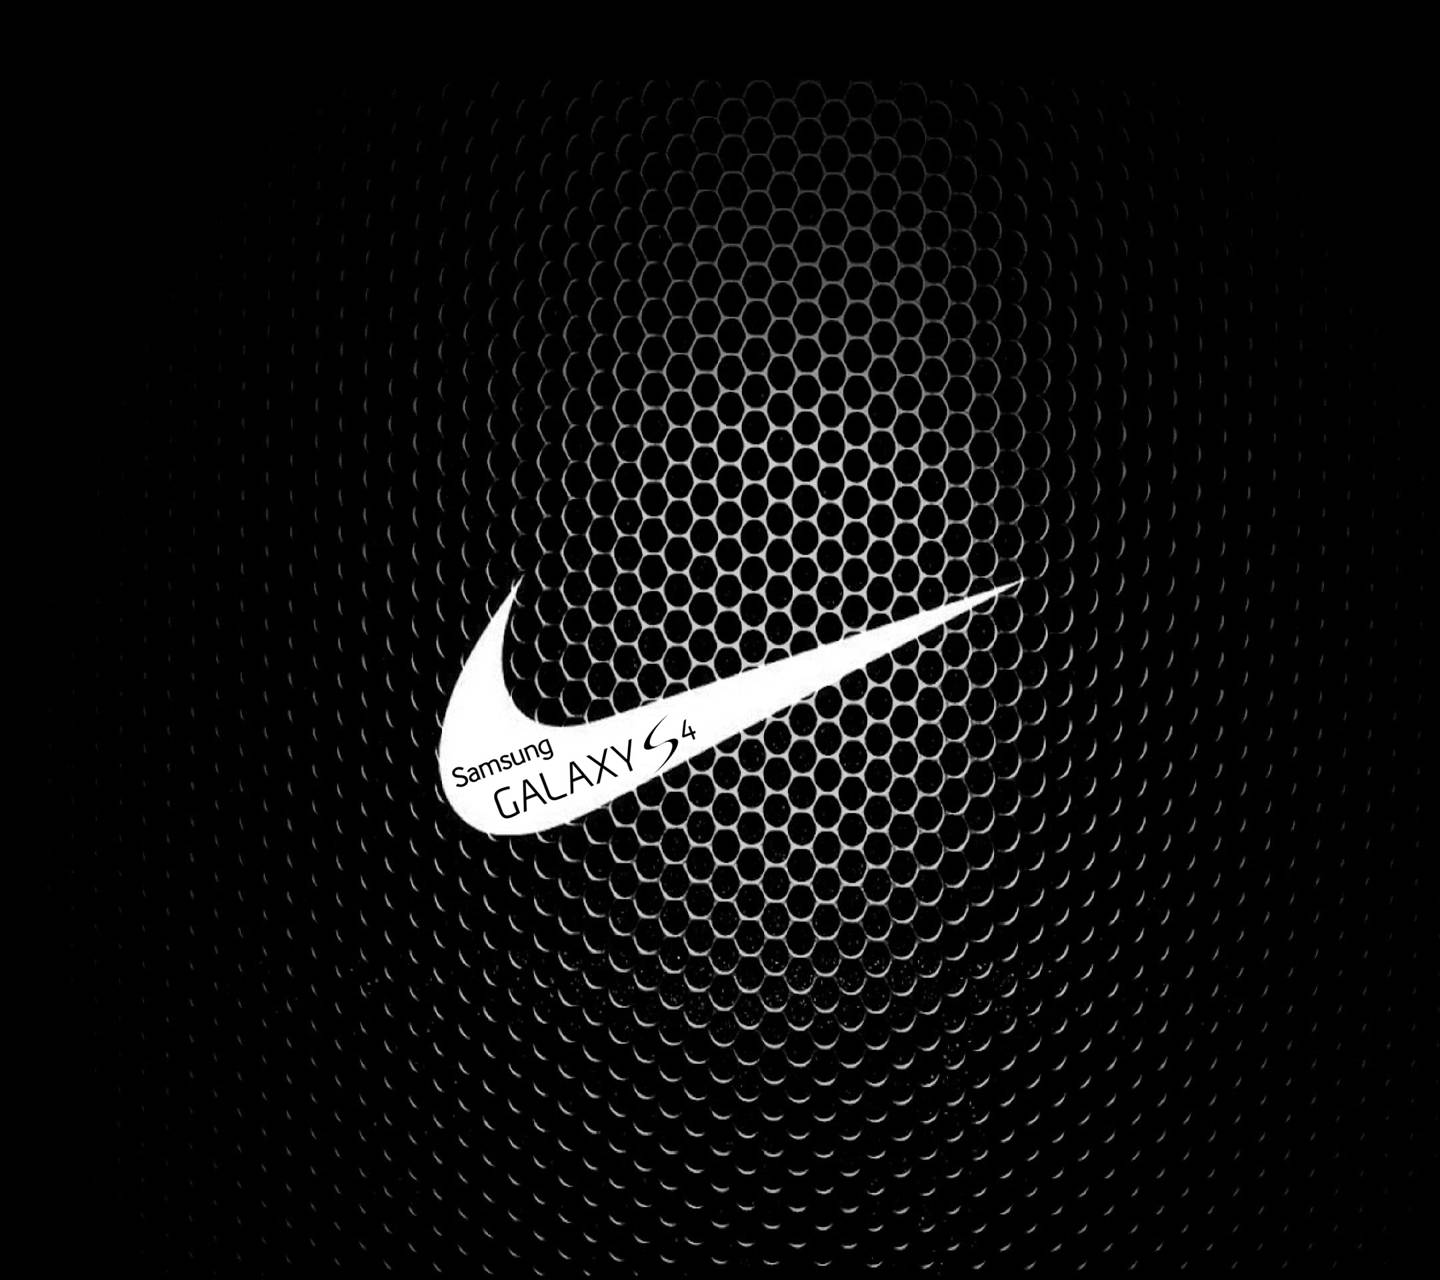 nike galaxy s4 wallpaper by maselli 4d free on zedge�